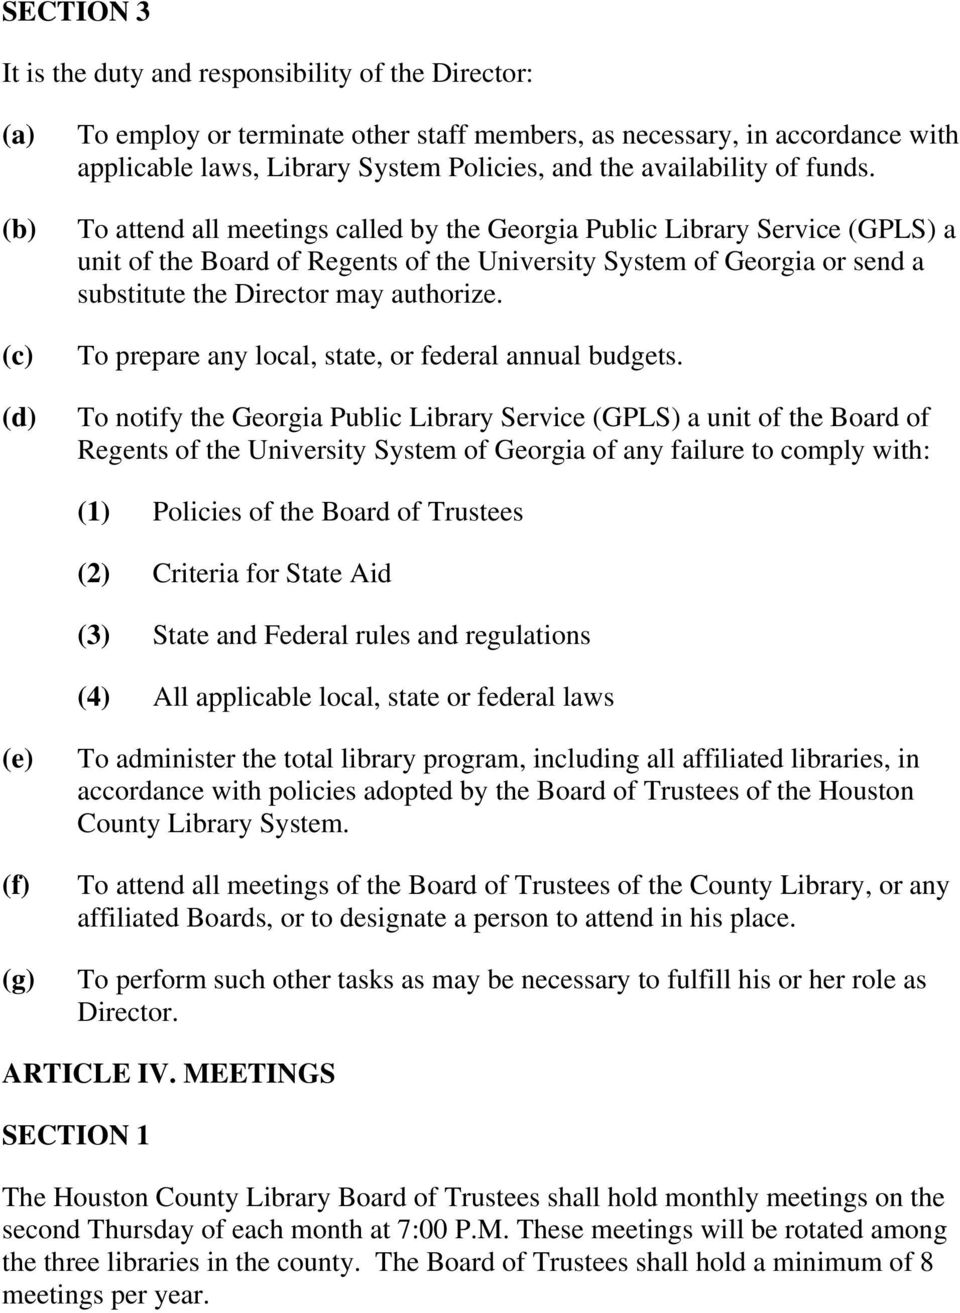 To attend all meetings called by the Georgia Public Library Service (GPLS) a unit of the Board of Regents of the University System of Georgia or send a substitute the Director may authorize.